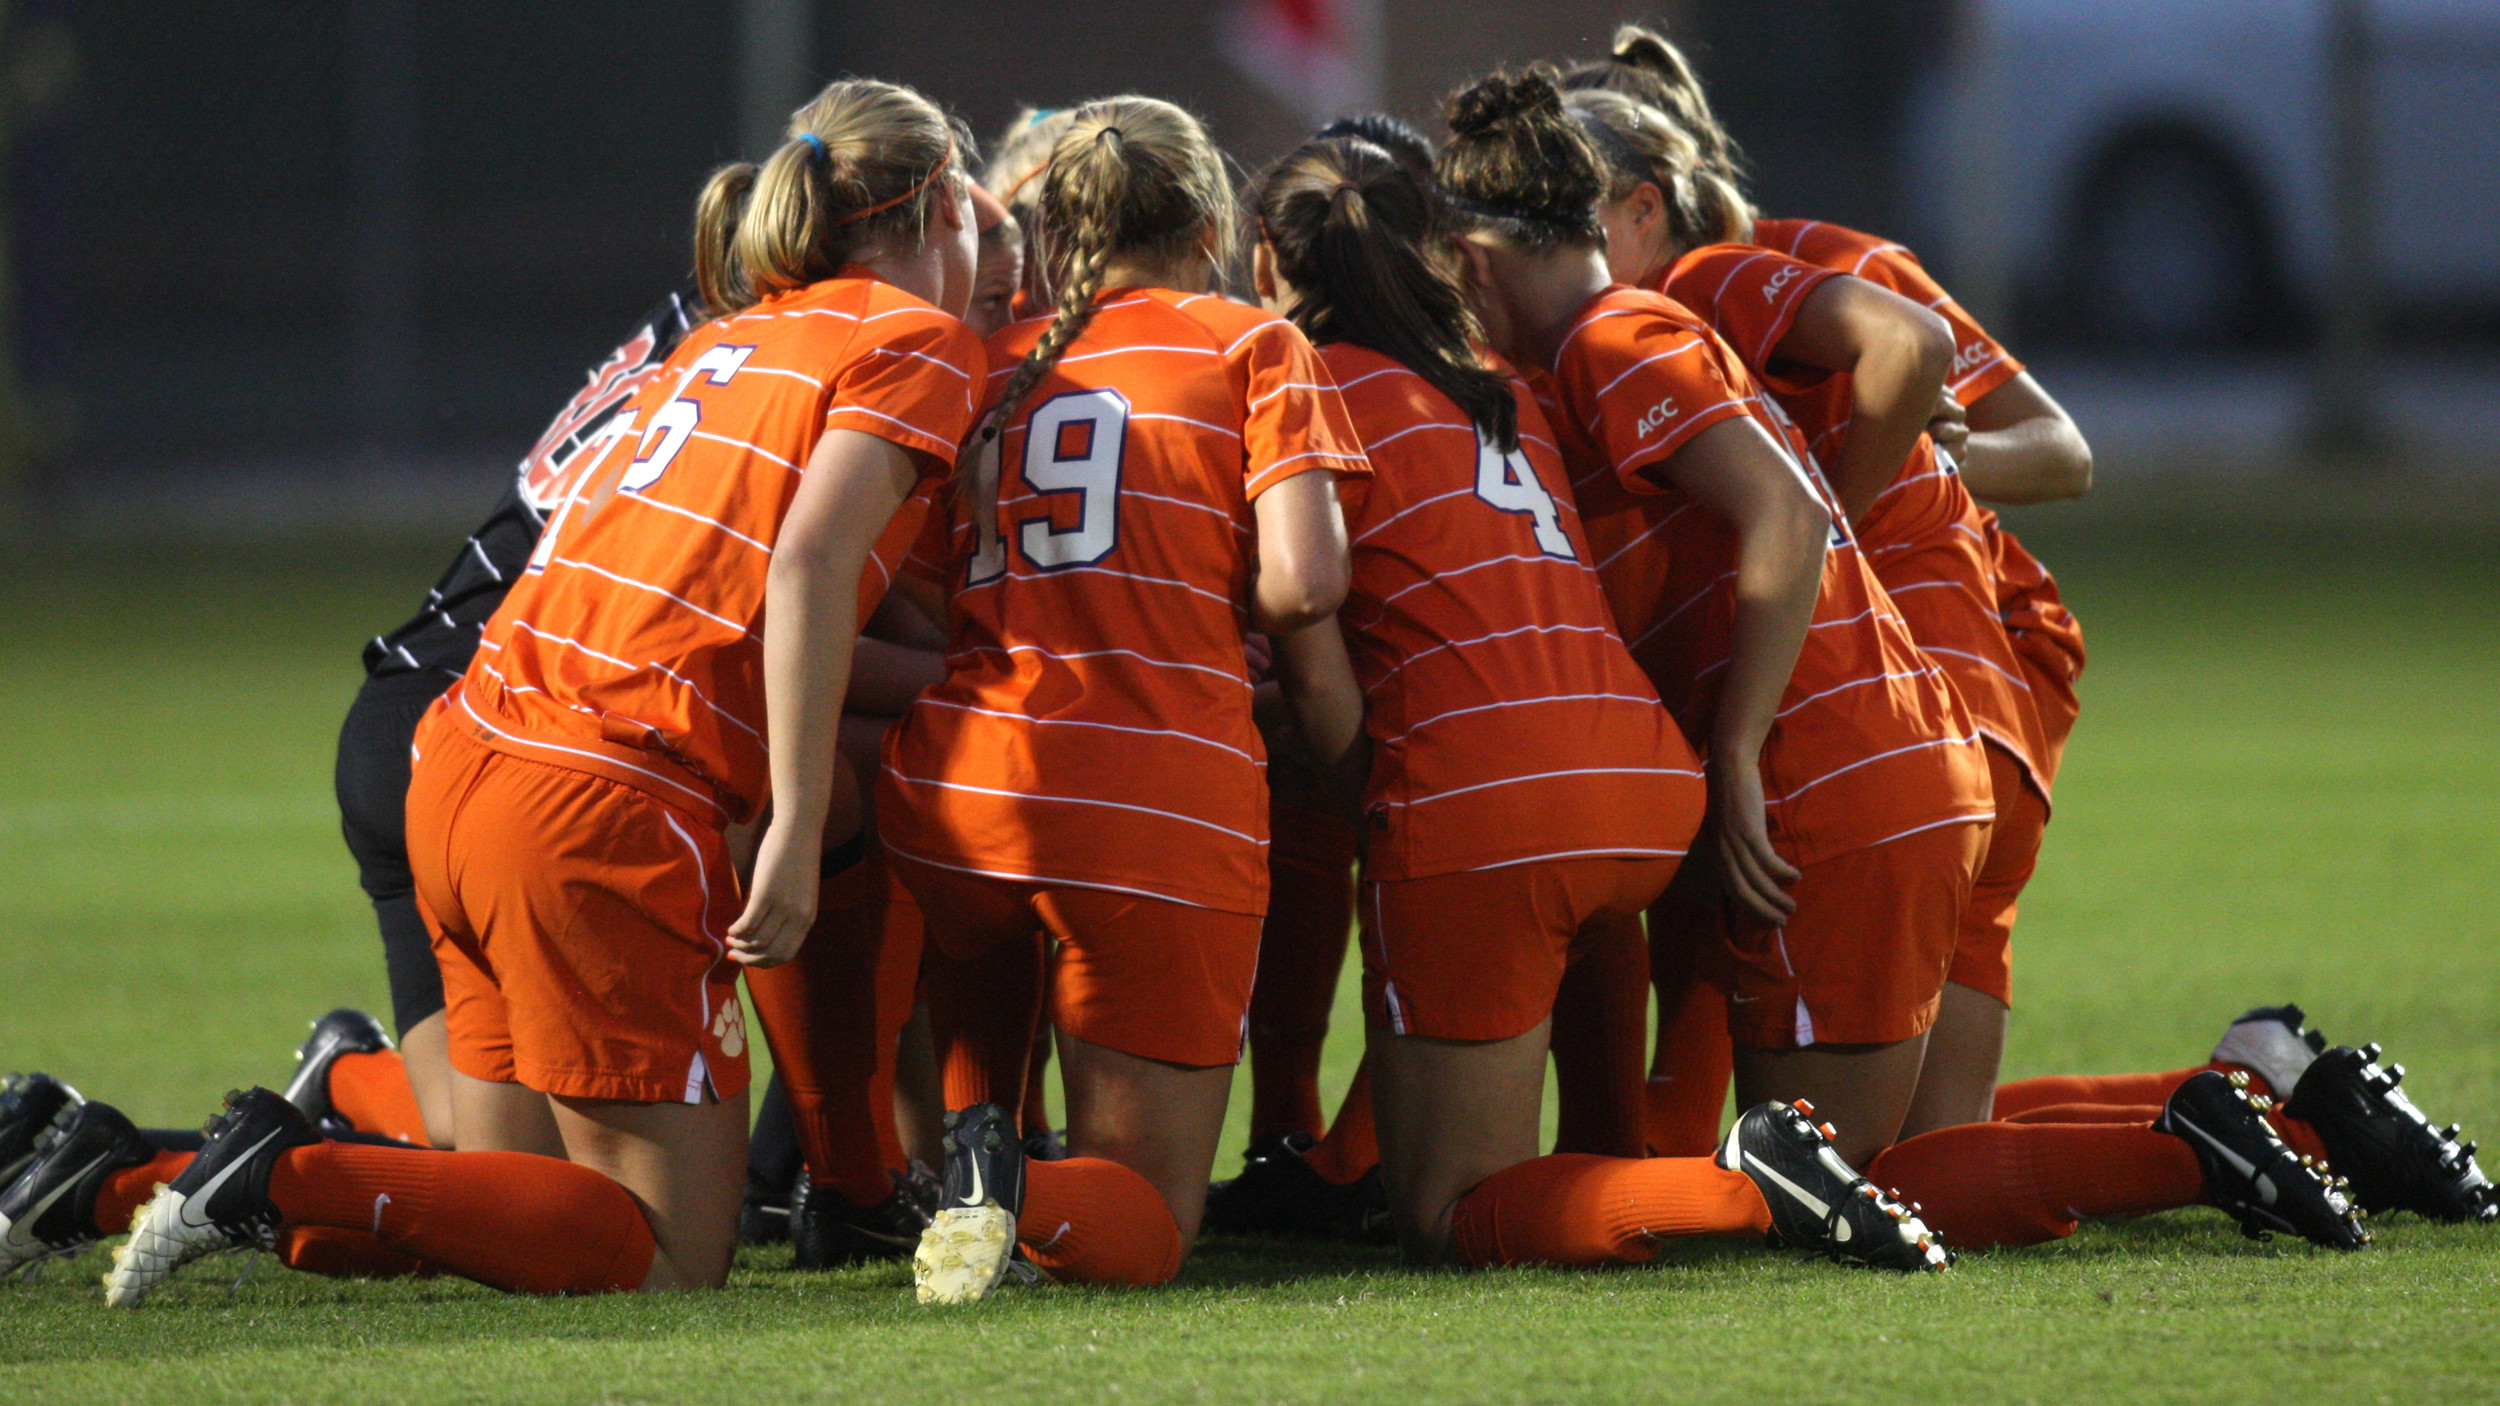 Clemson Women's Soccer to Open 2013 Season at Auburn Friday